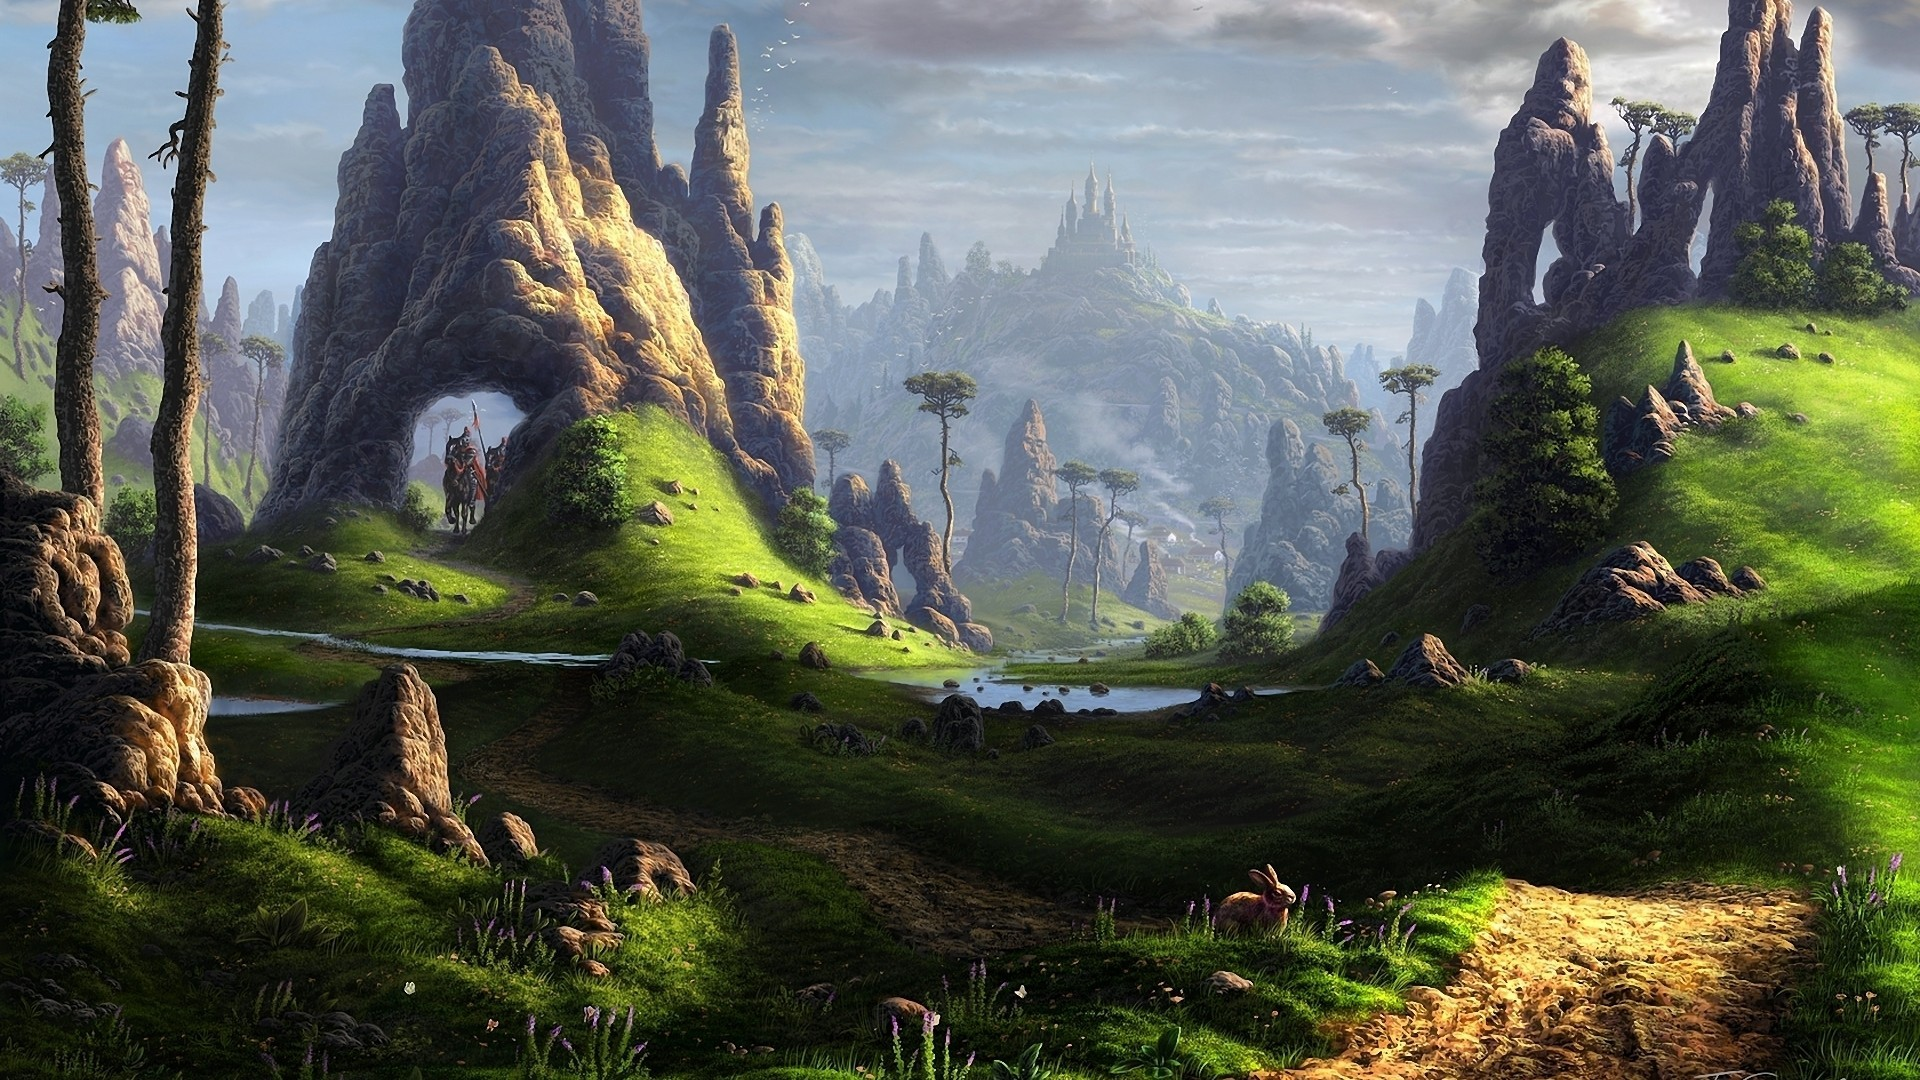 Stunning Hd Fantasy Wallpapers: Fantasy Landscape Wallpaper 1920x1080 ·① Download Free